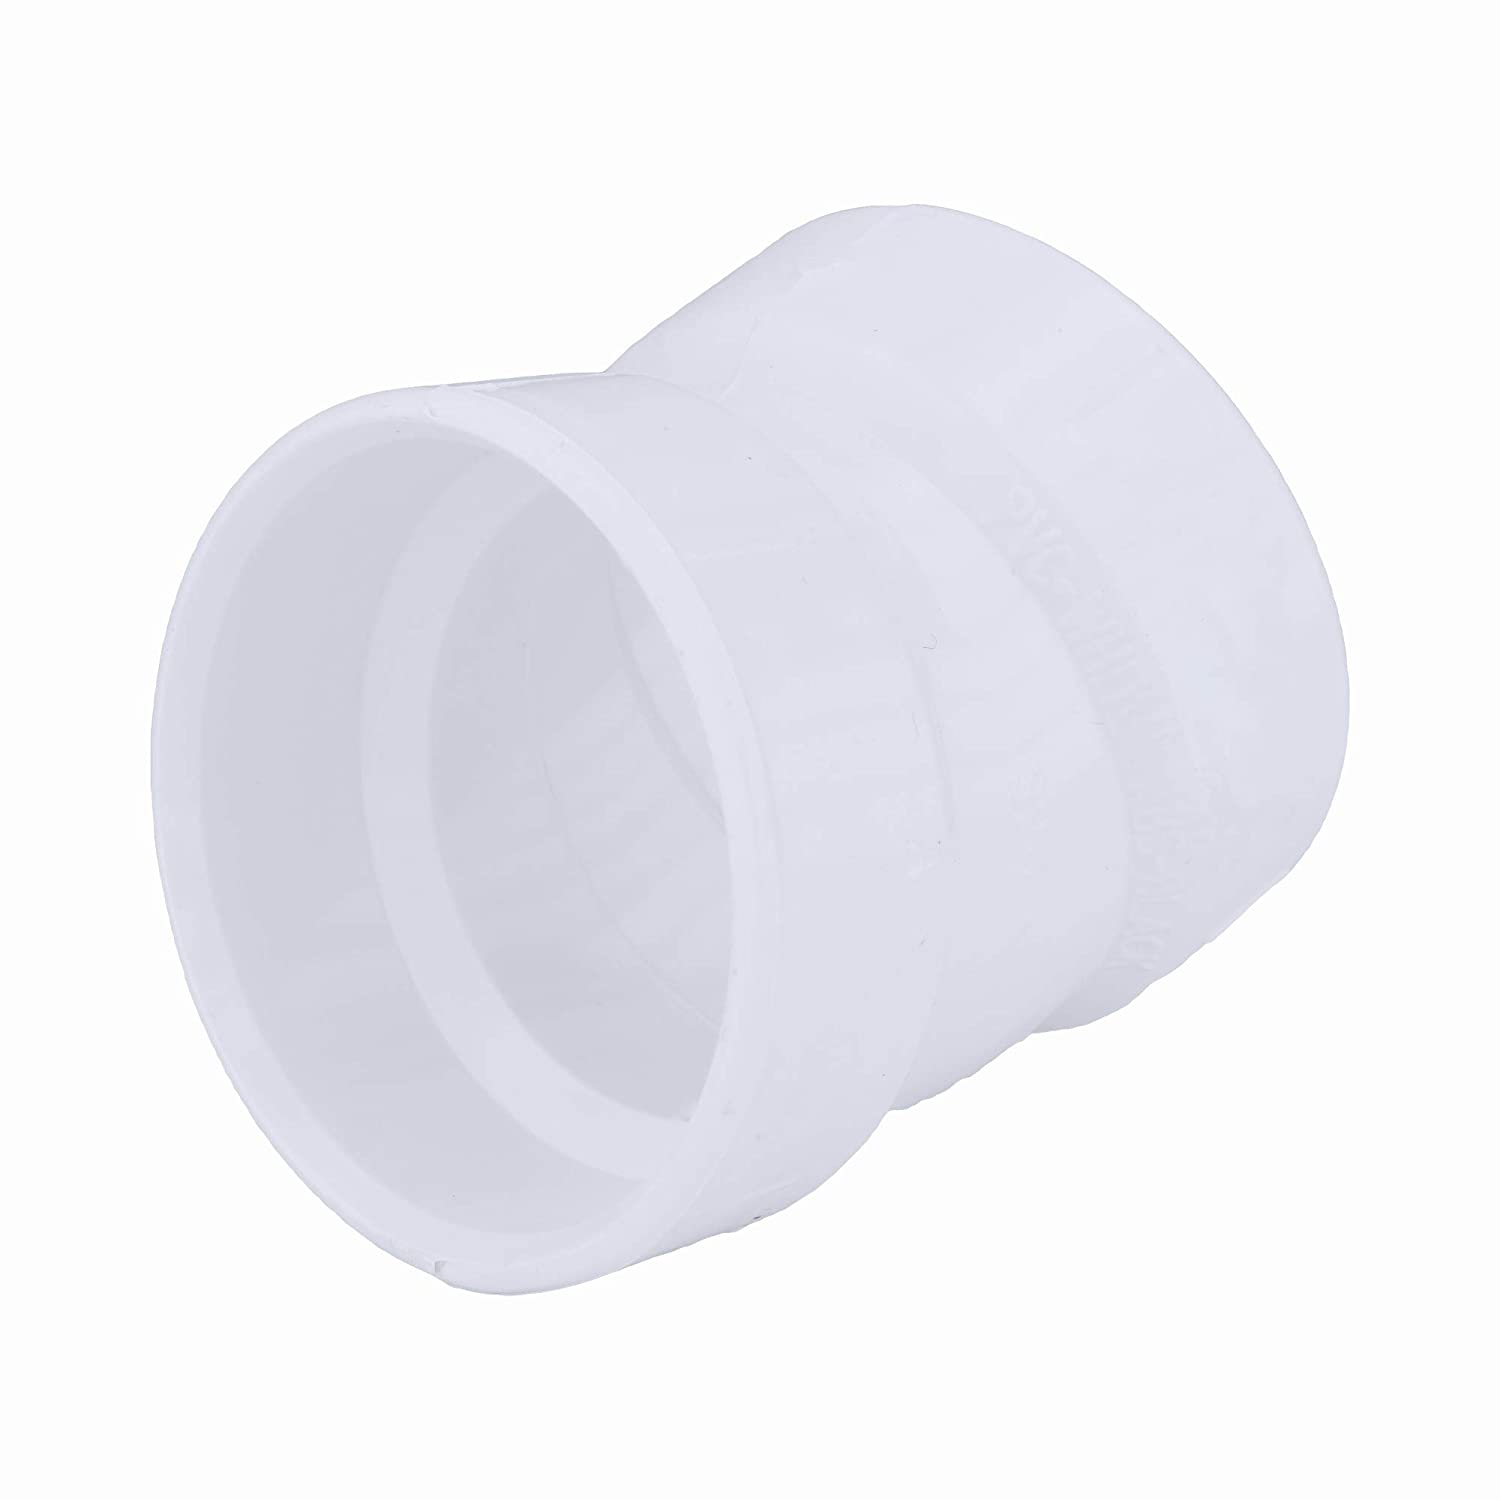 Single Unit Durable Charlotte Pipe 4 1//16 Bend Pipe Fitting - Hub x Hub High Tensile and Sound Deadening for Home or Industrial Use Schedule 40 PVC DWV Easy to Install Drain, Waste and Vent